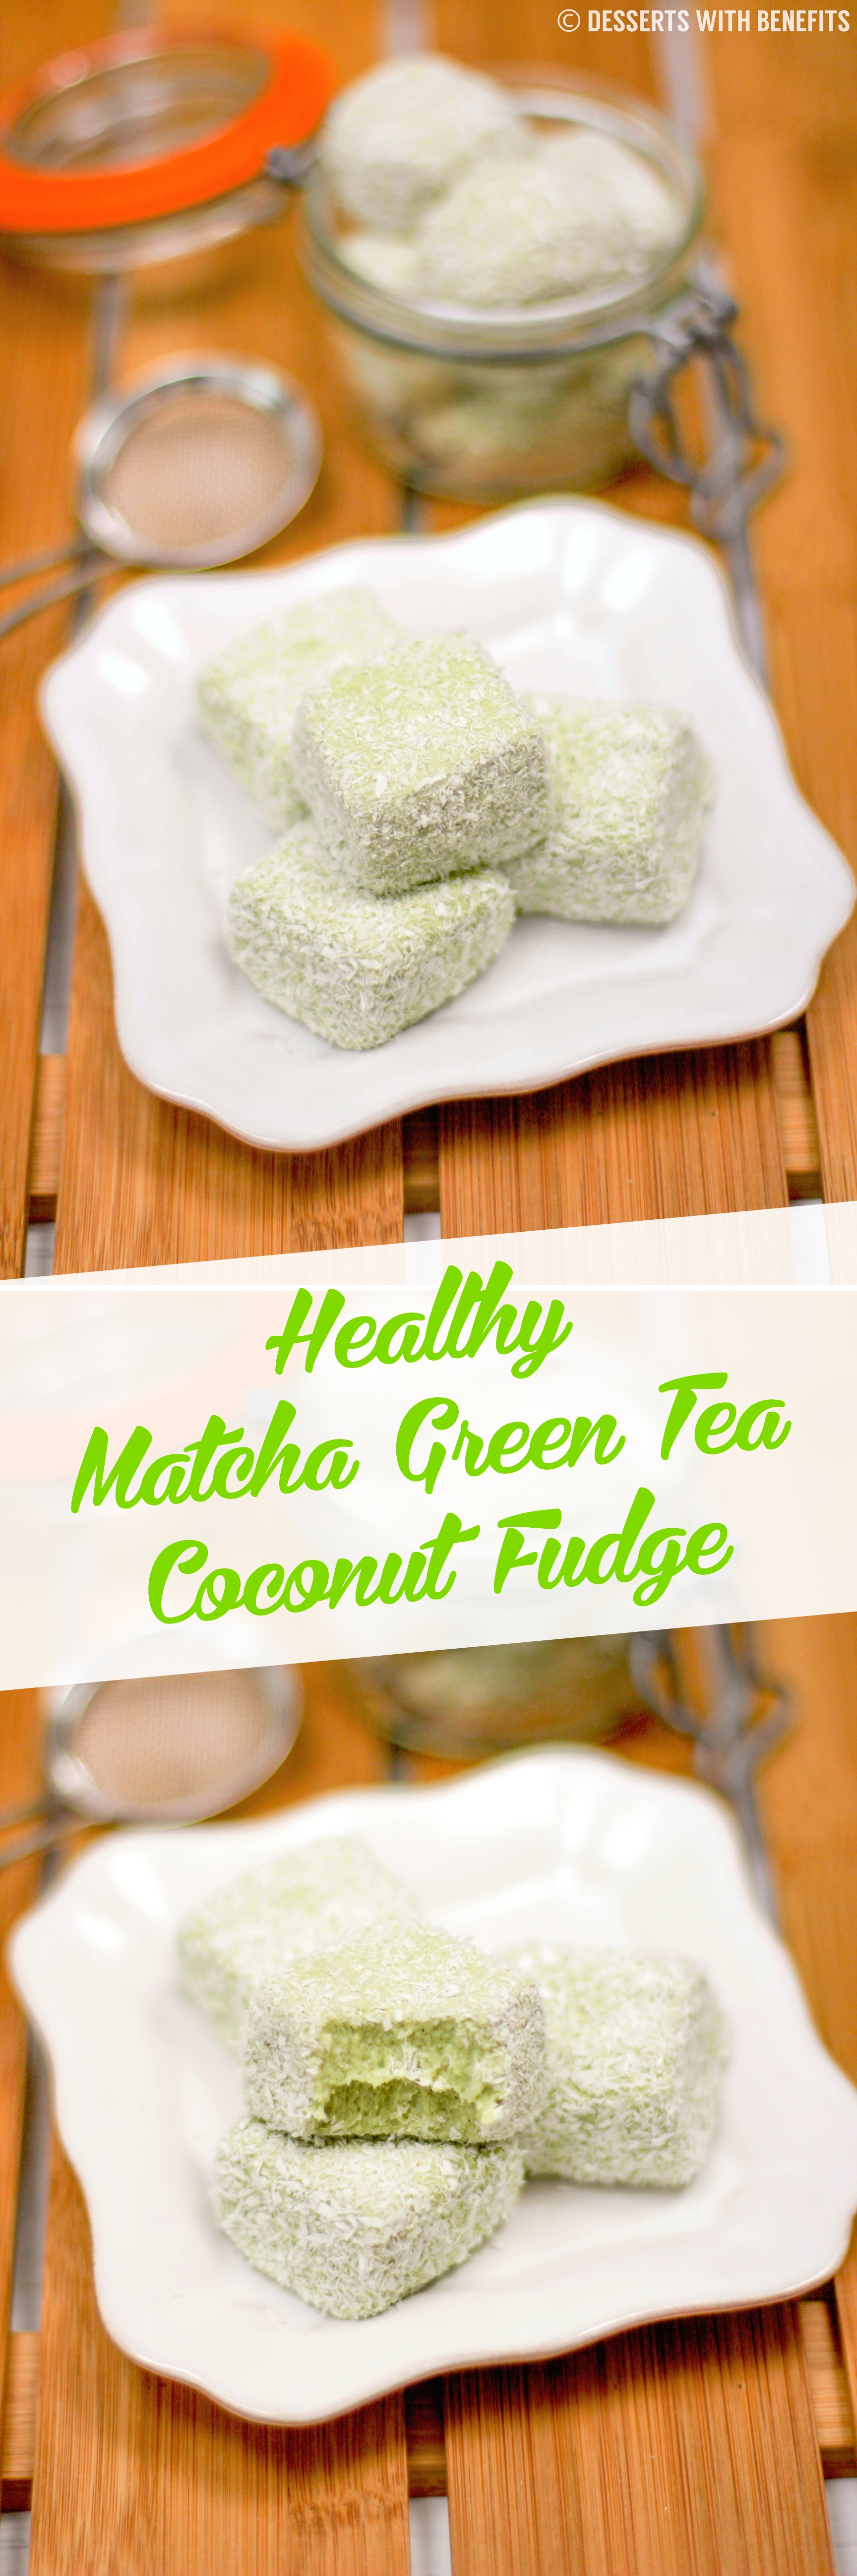 Healthy Matcha Green Tea Coconut Fudge recipe (refined sugar free, low carb, high protein, high fiber, gluten free) - Healthy Dessert Recipes at Desserts with Benefits